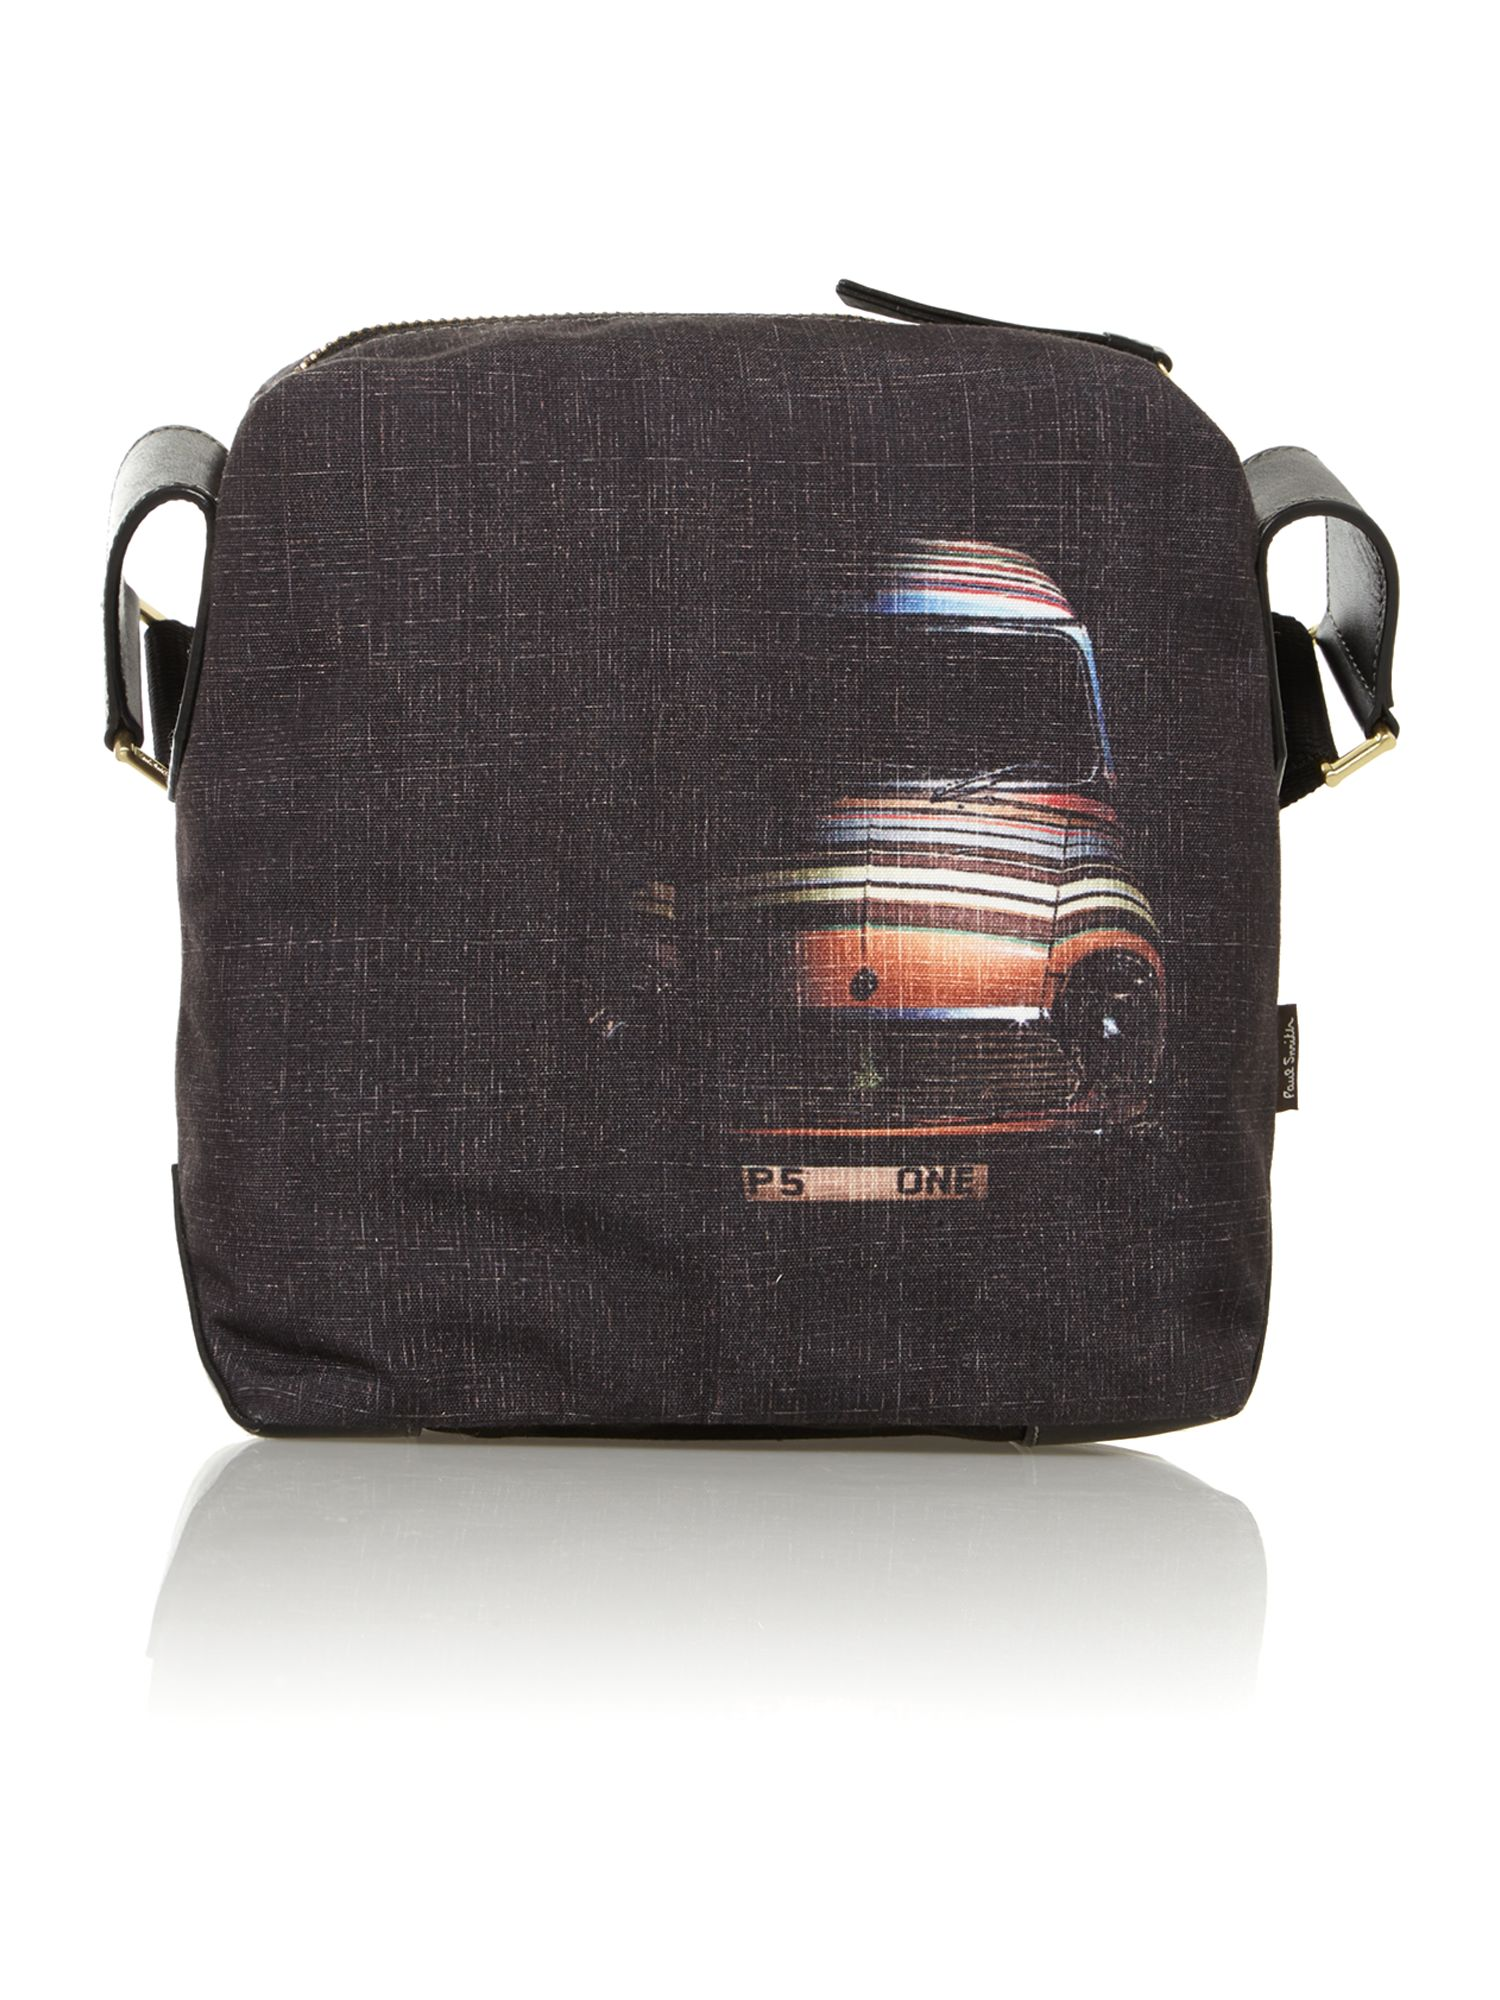 Car graphic pouch bag